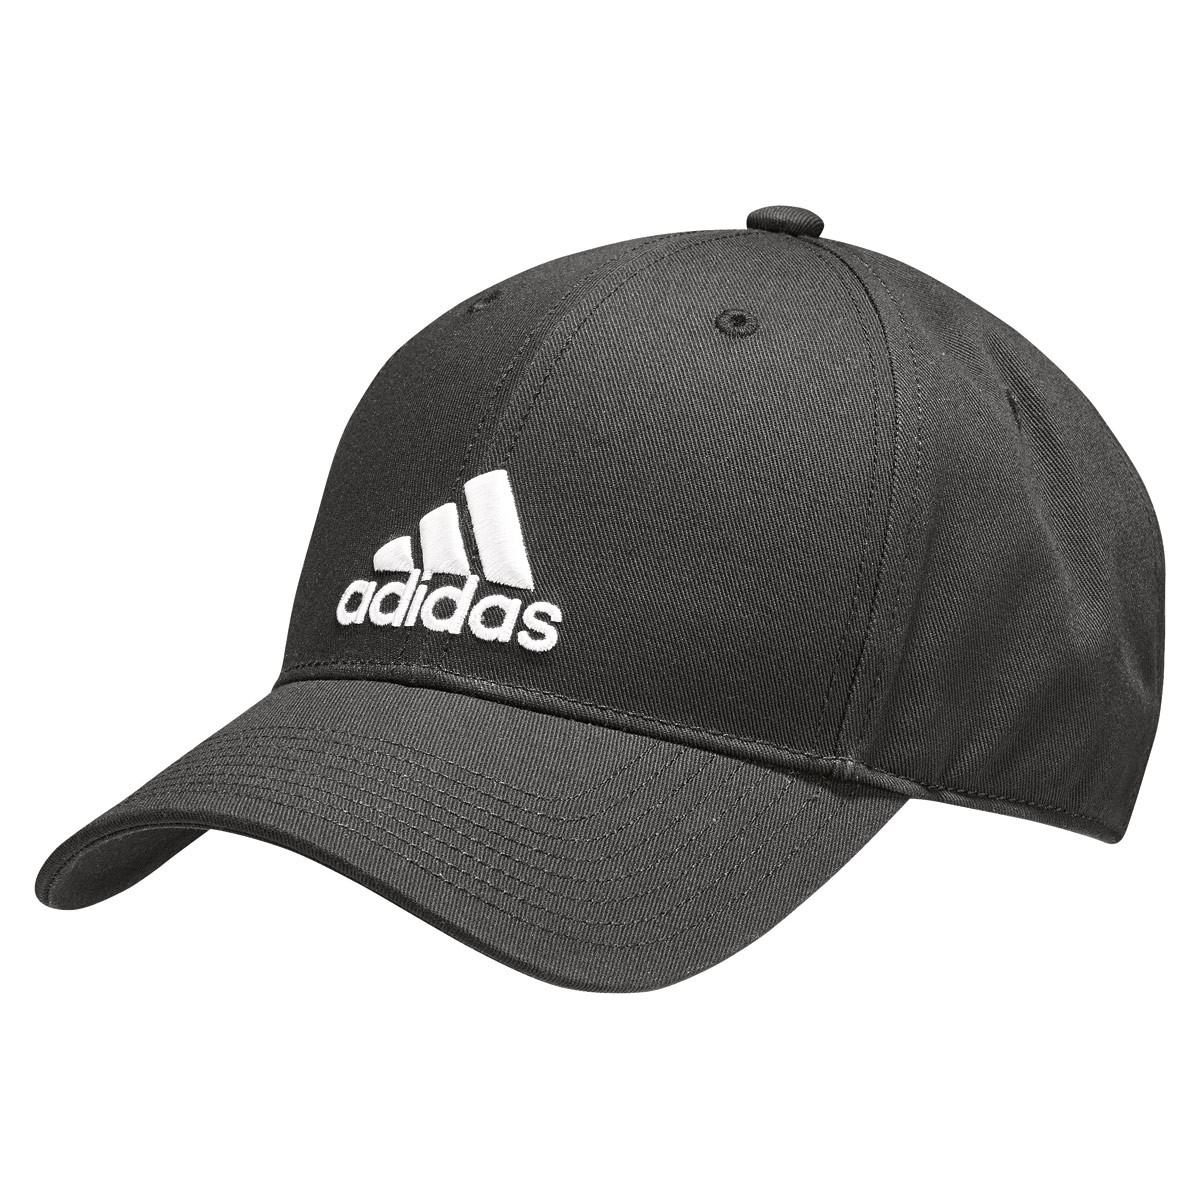 fec57283 adidas 6 Panel Classic Cap Cotton - Headdress - Black | 21RUN